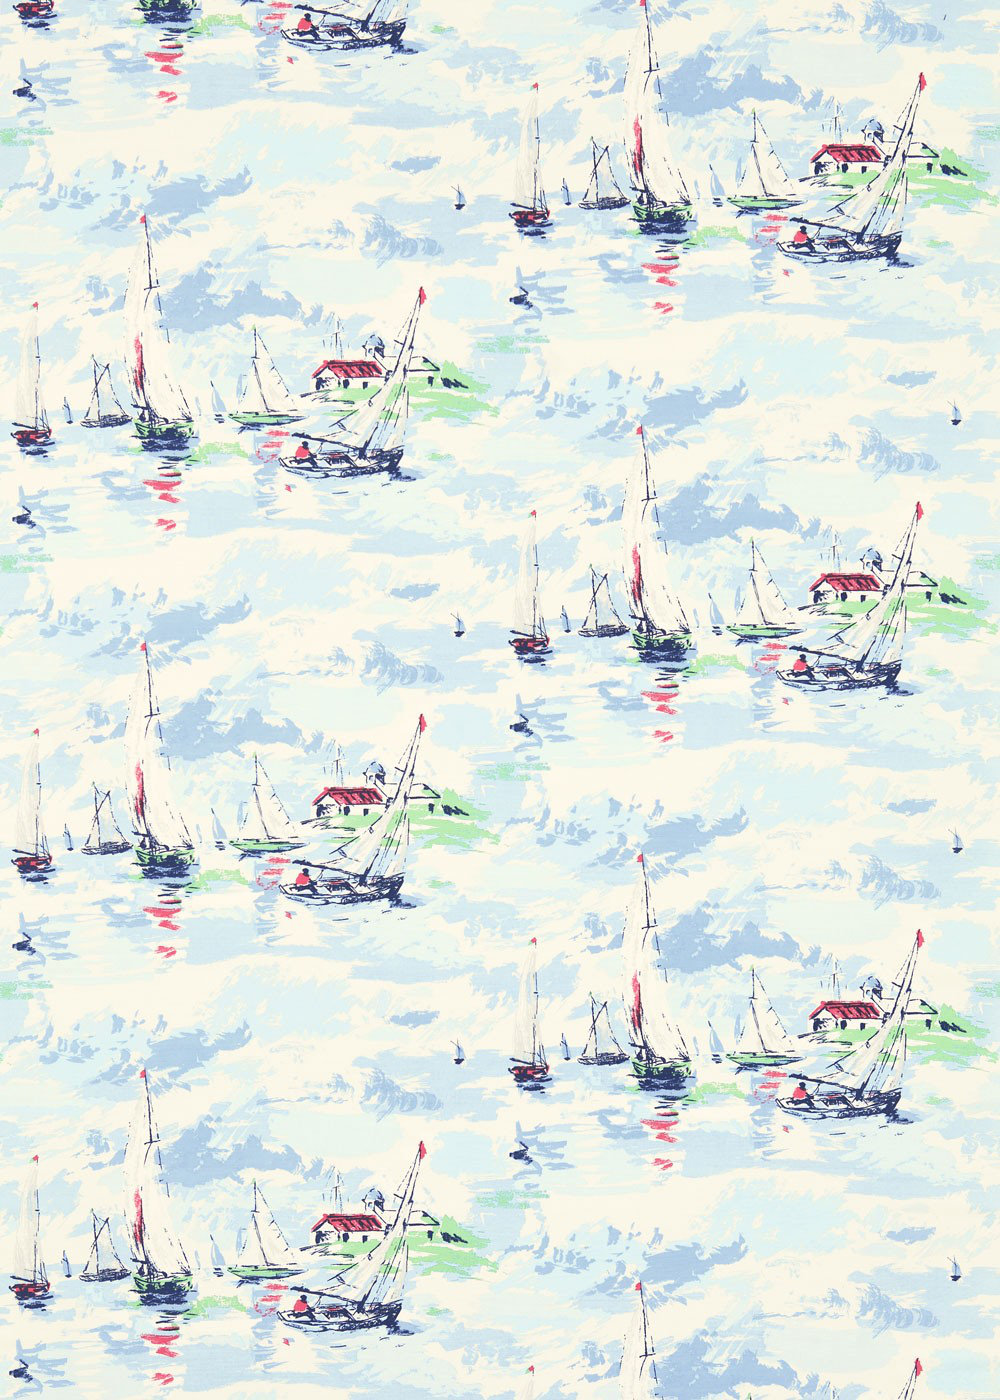 Sanderson Fabric Sail Away 224340